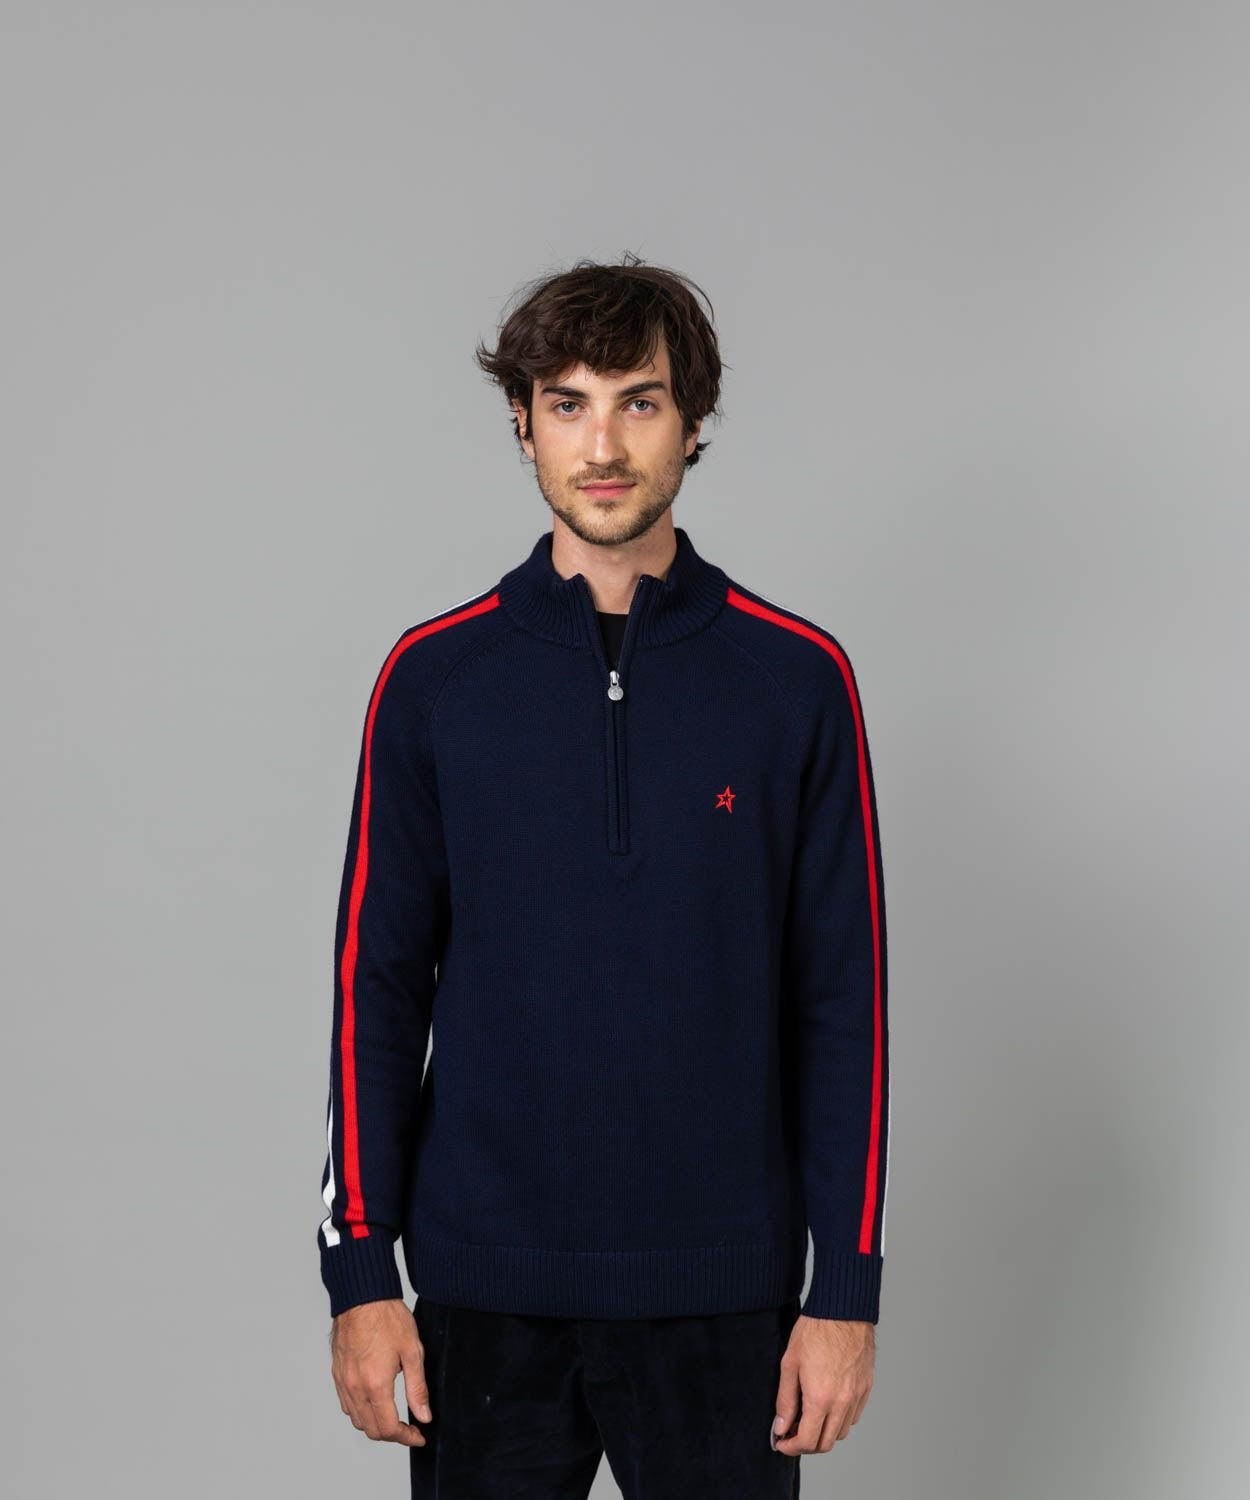 Men's La Tour IV Sweater